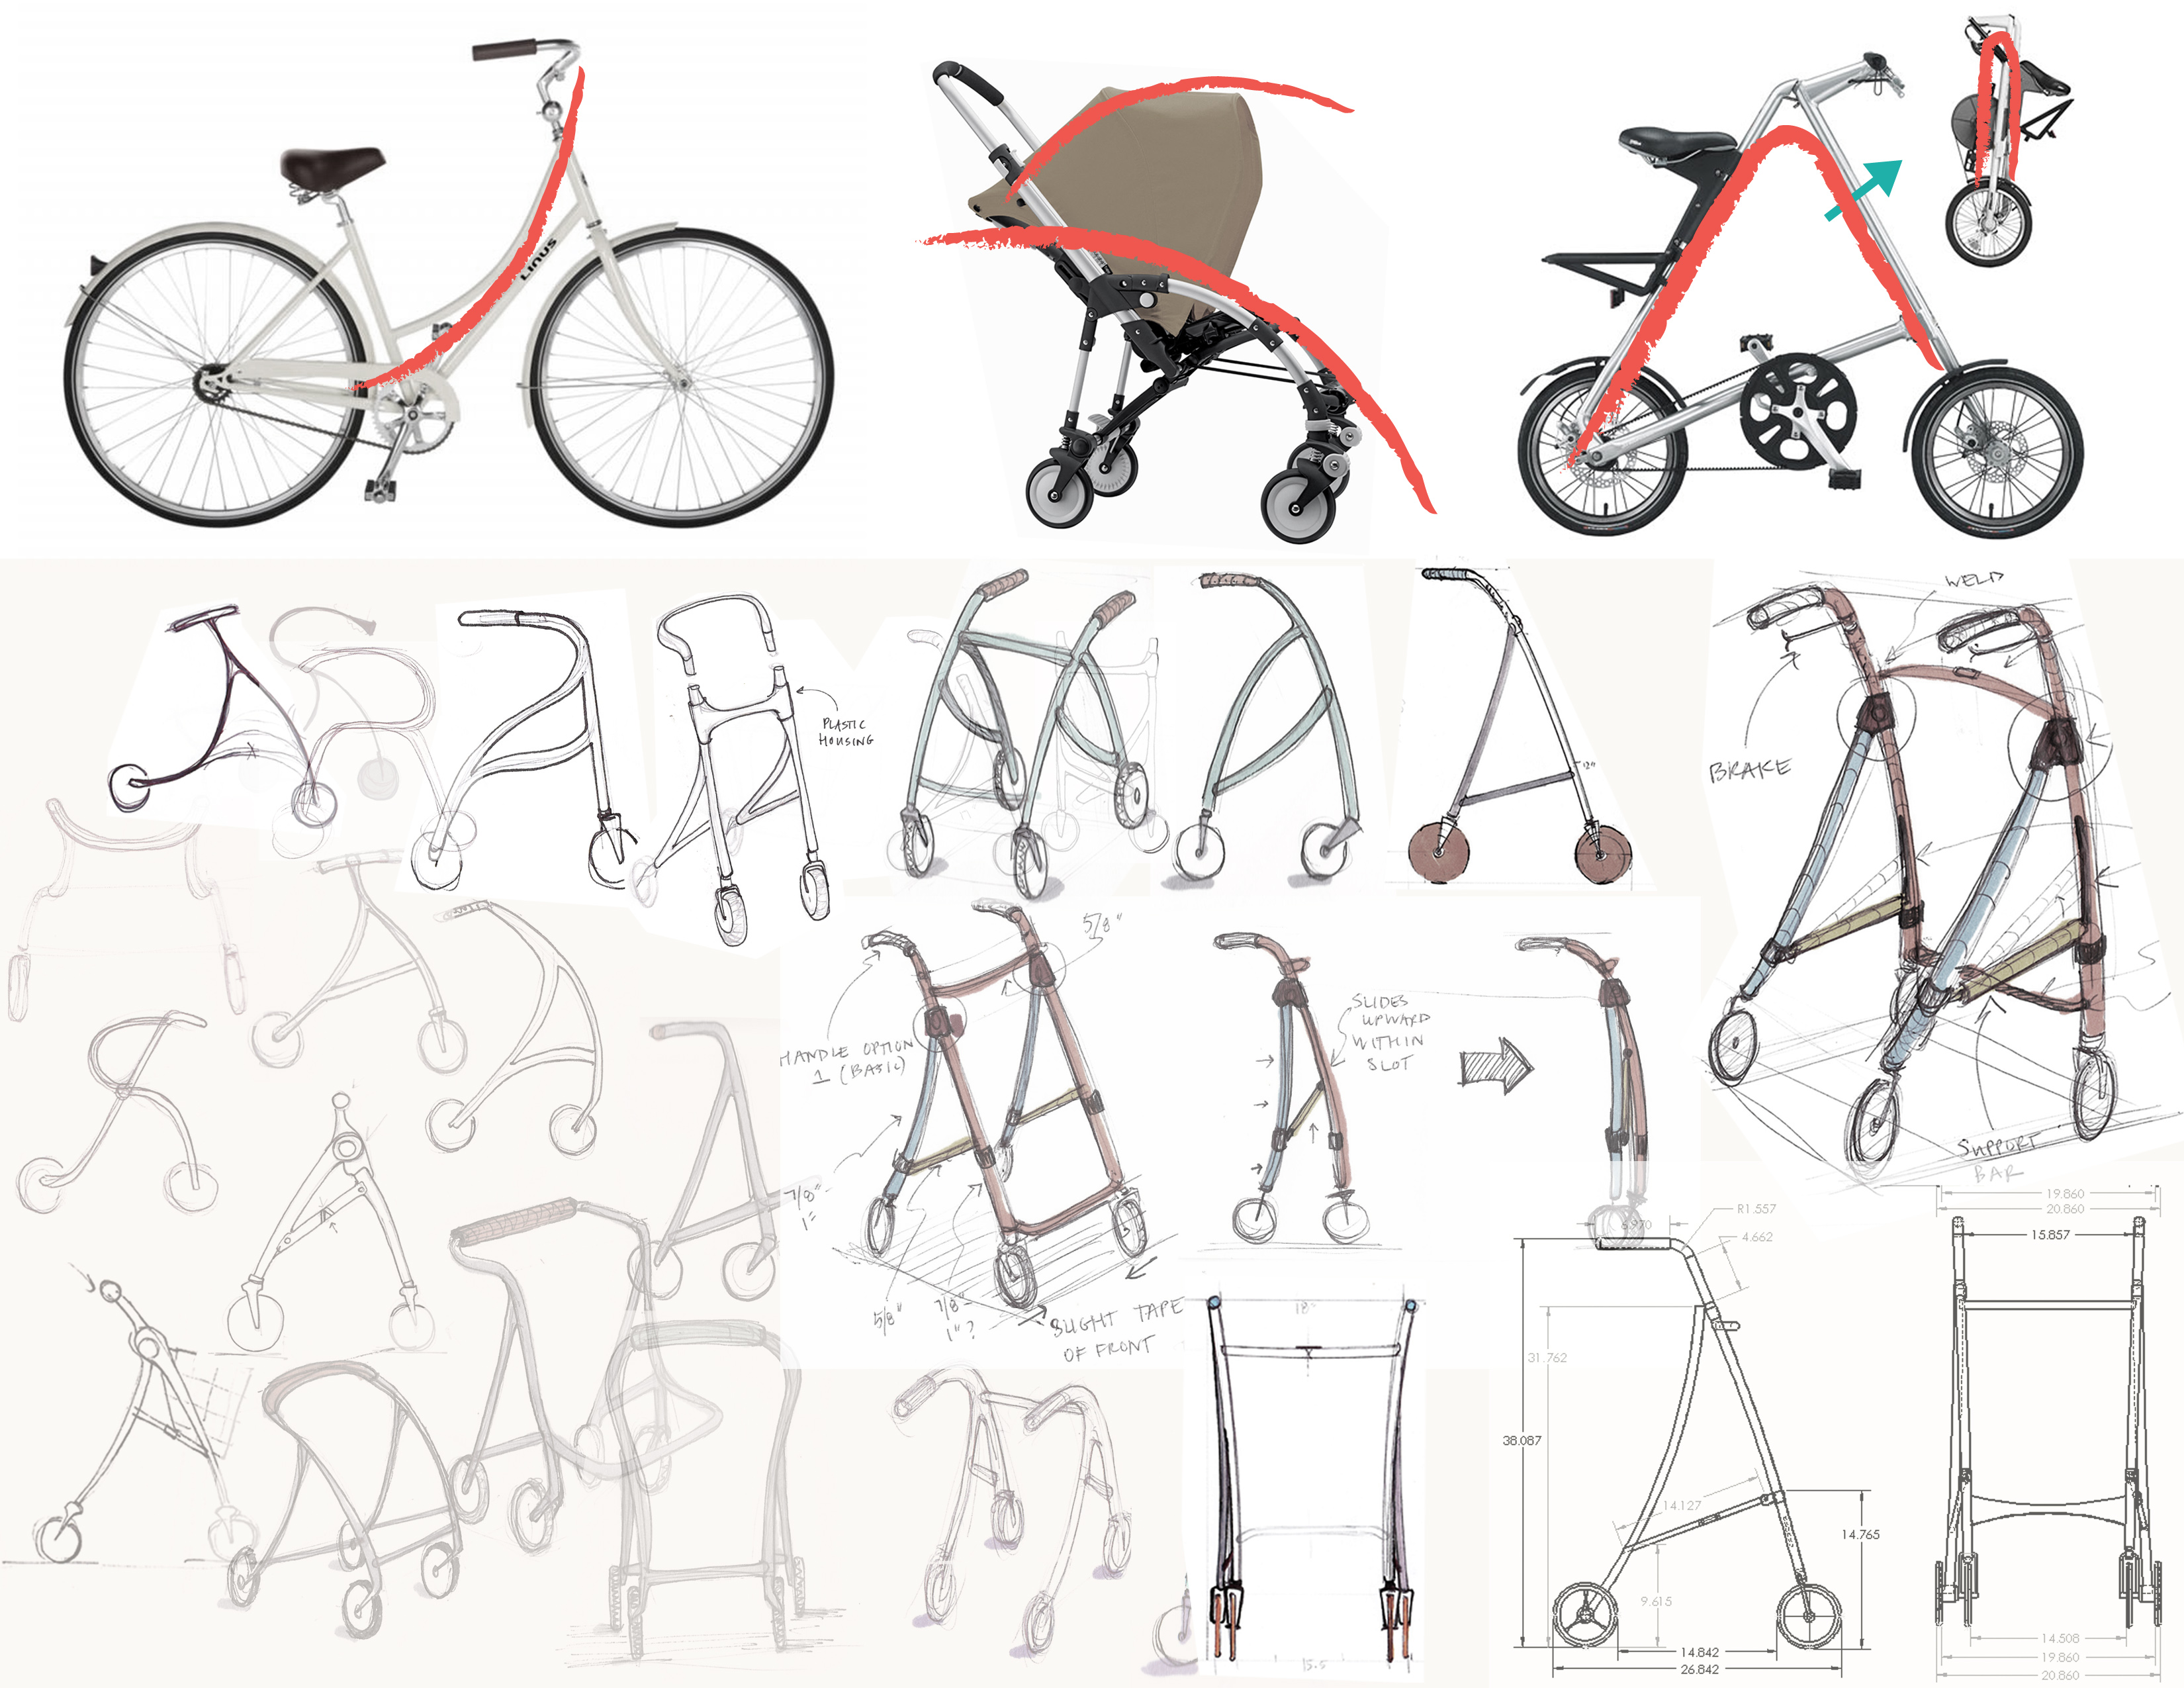 A drawing with 2 dozen or so sketches and images of wheeled gear, with directional red lines indicating their axes of movement. Bikes, strollers and all forms of walker prototypes.